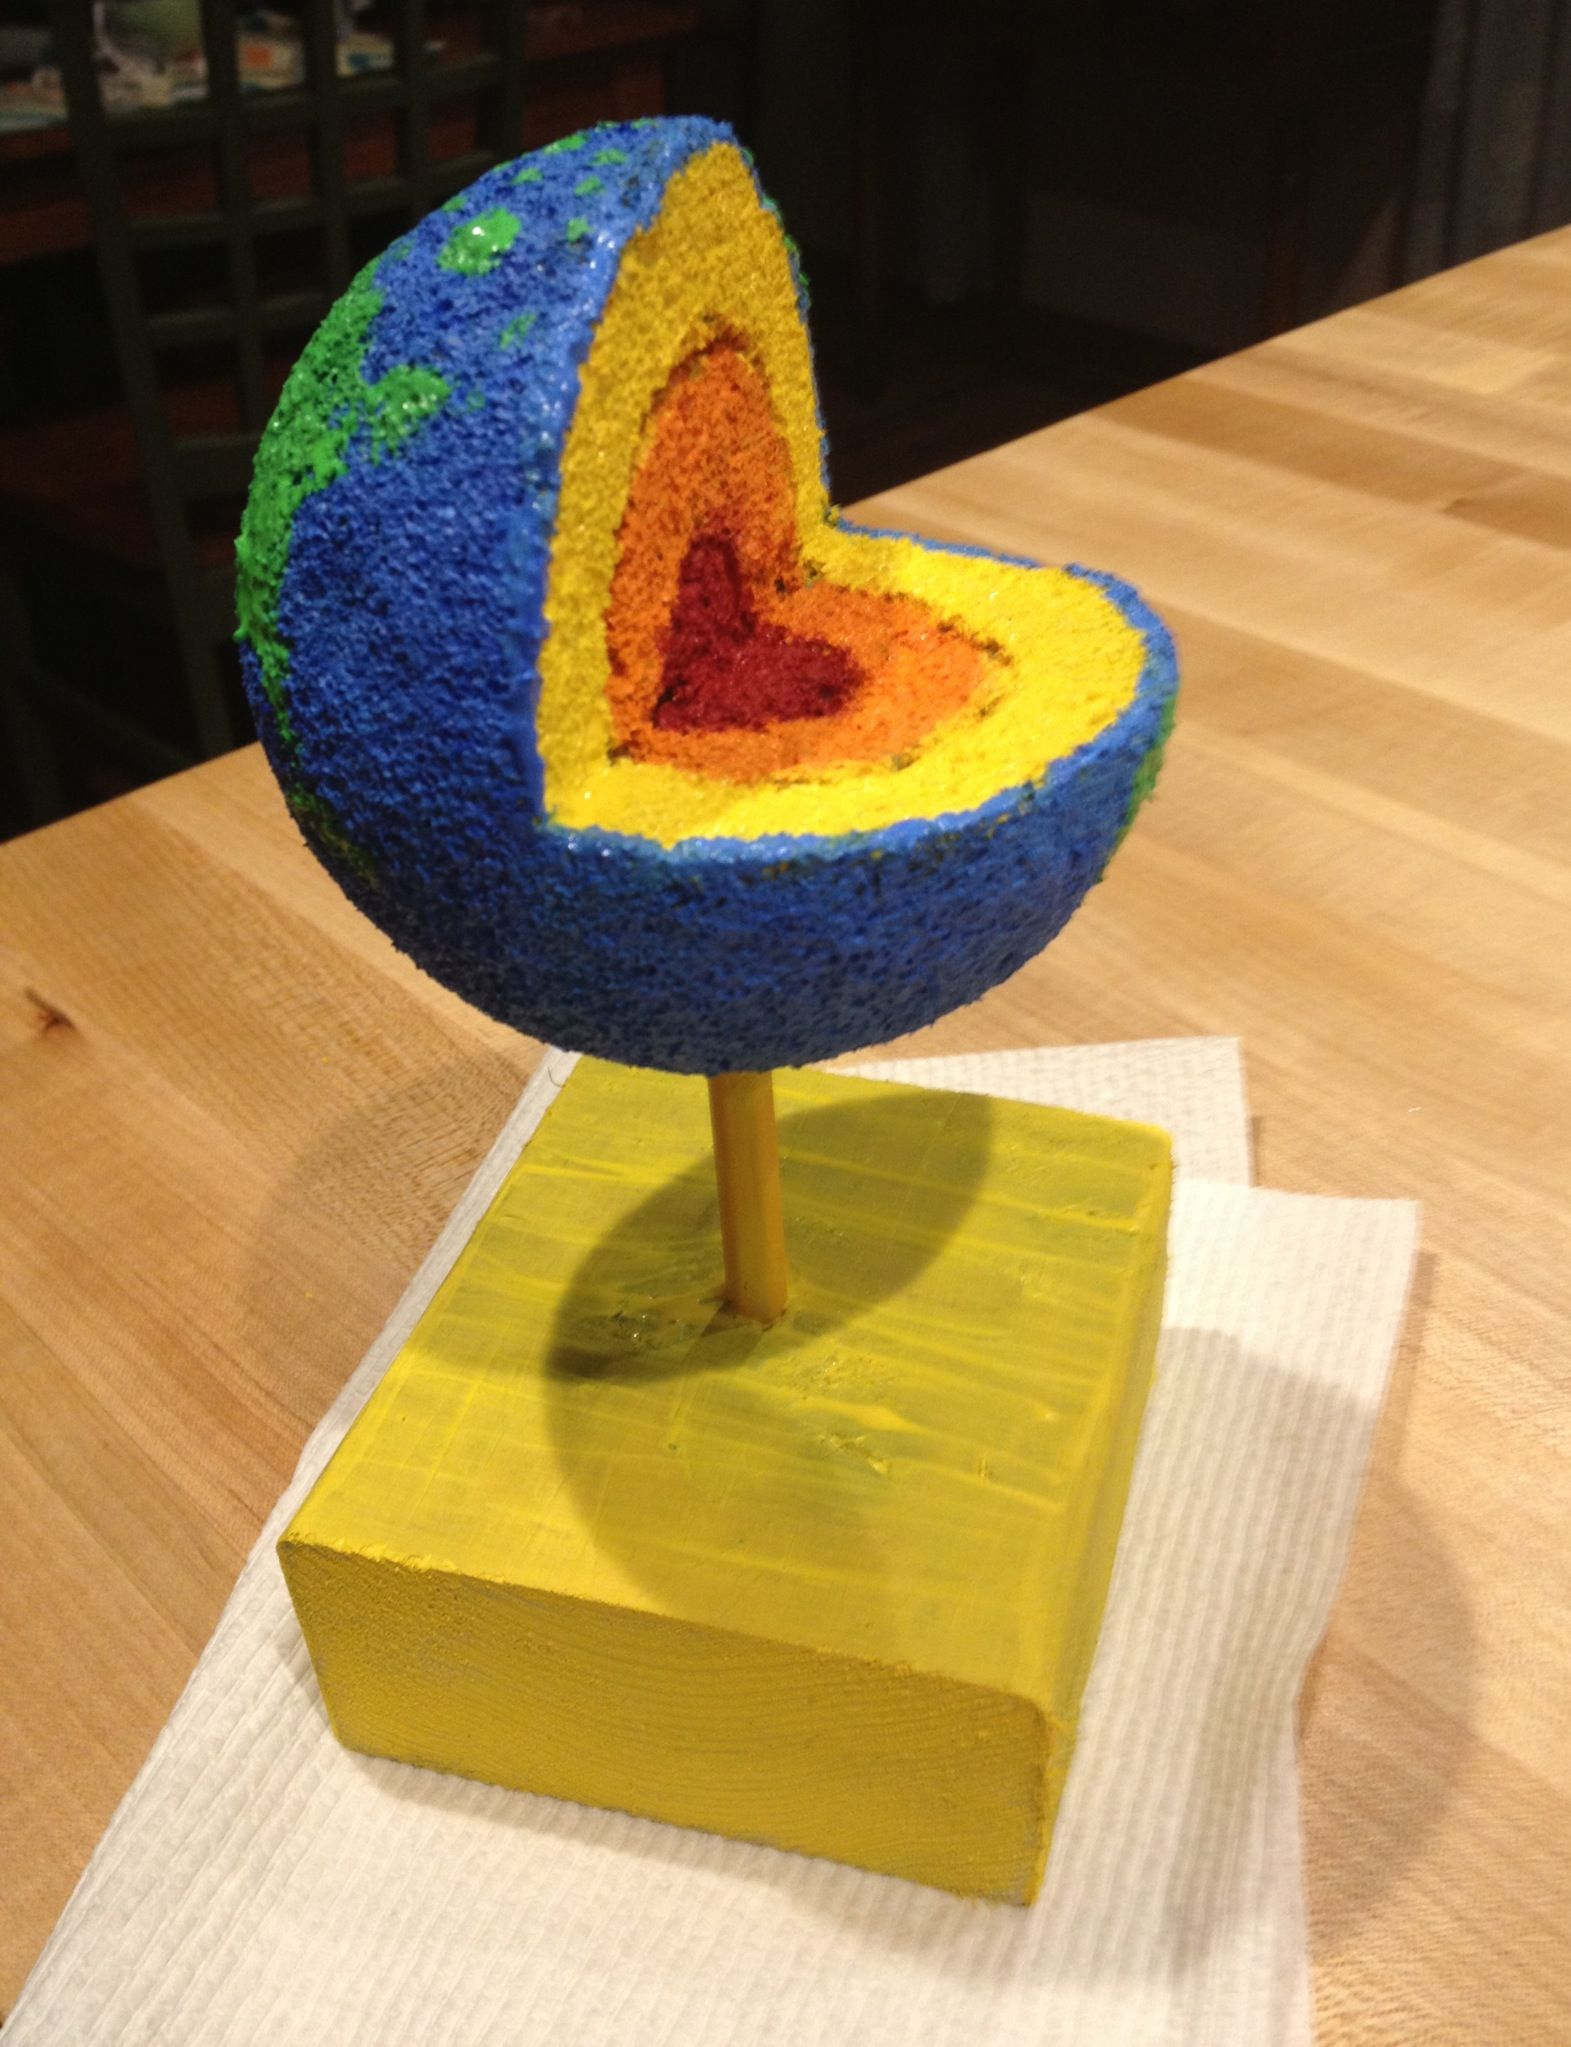 Earth layer project using styrofoam ball, acrylic paint, pencil and ...